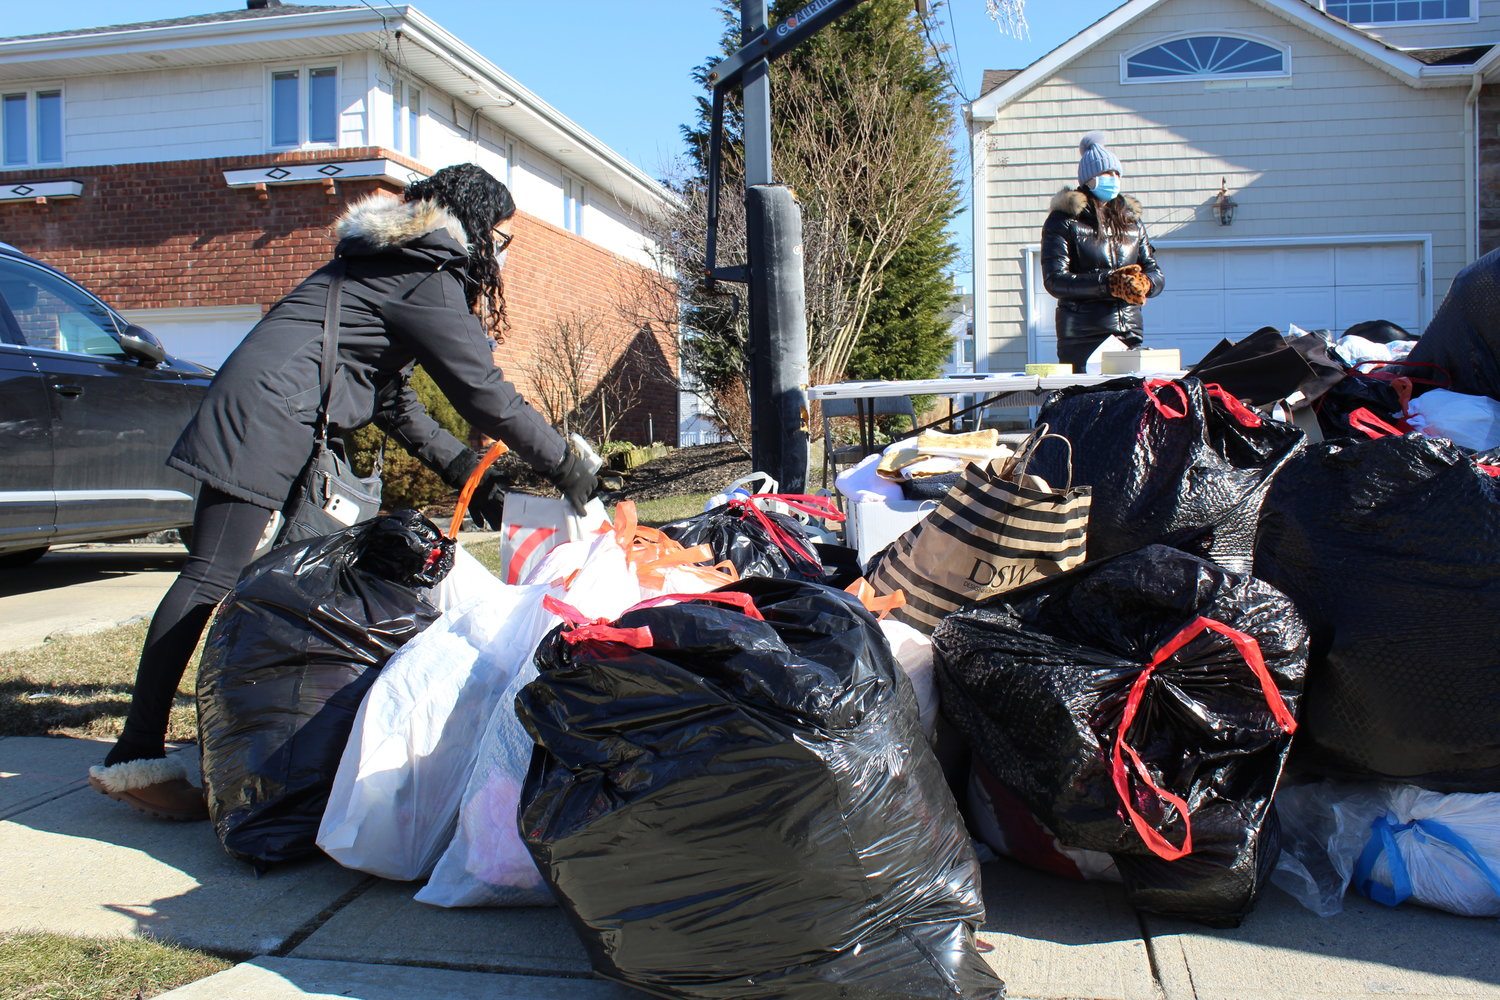 Dozens of residents dropped bags full of donations onto a      collection pile, which stretched the entire length of the Levines'  driveway and took up some of the sidewalk.